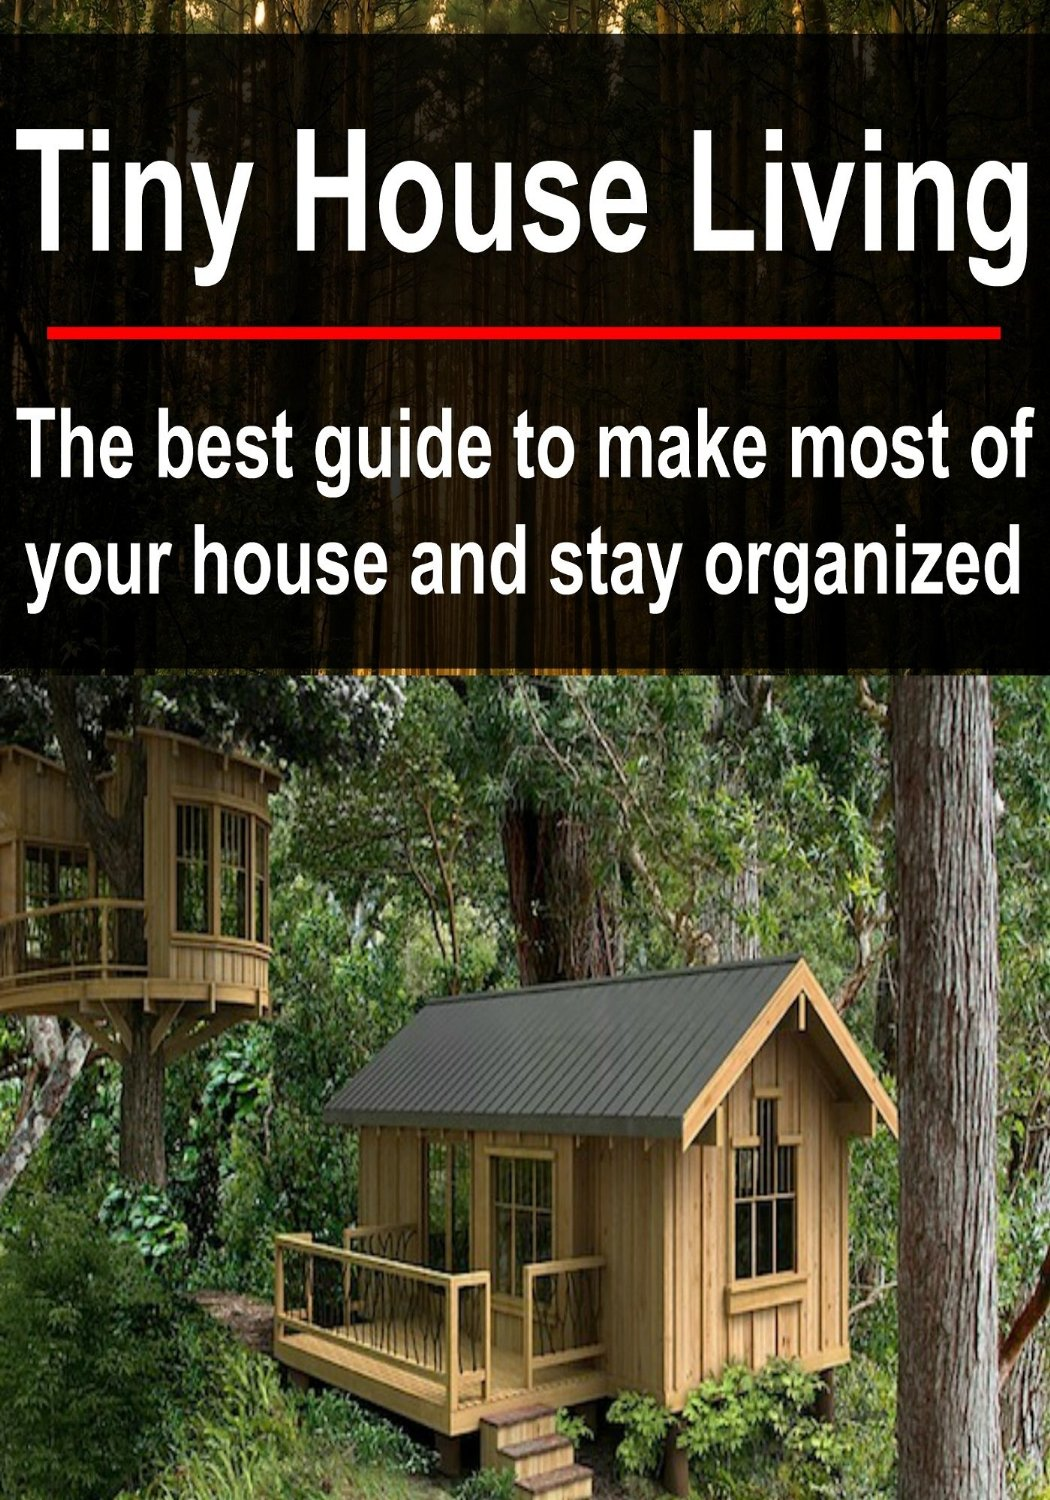 Tiny House Living: The Best Guide to Make Most of Your House and Stay Organized free download